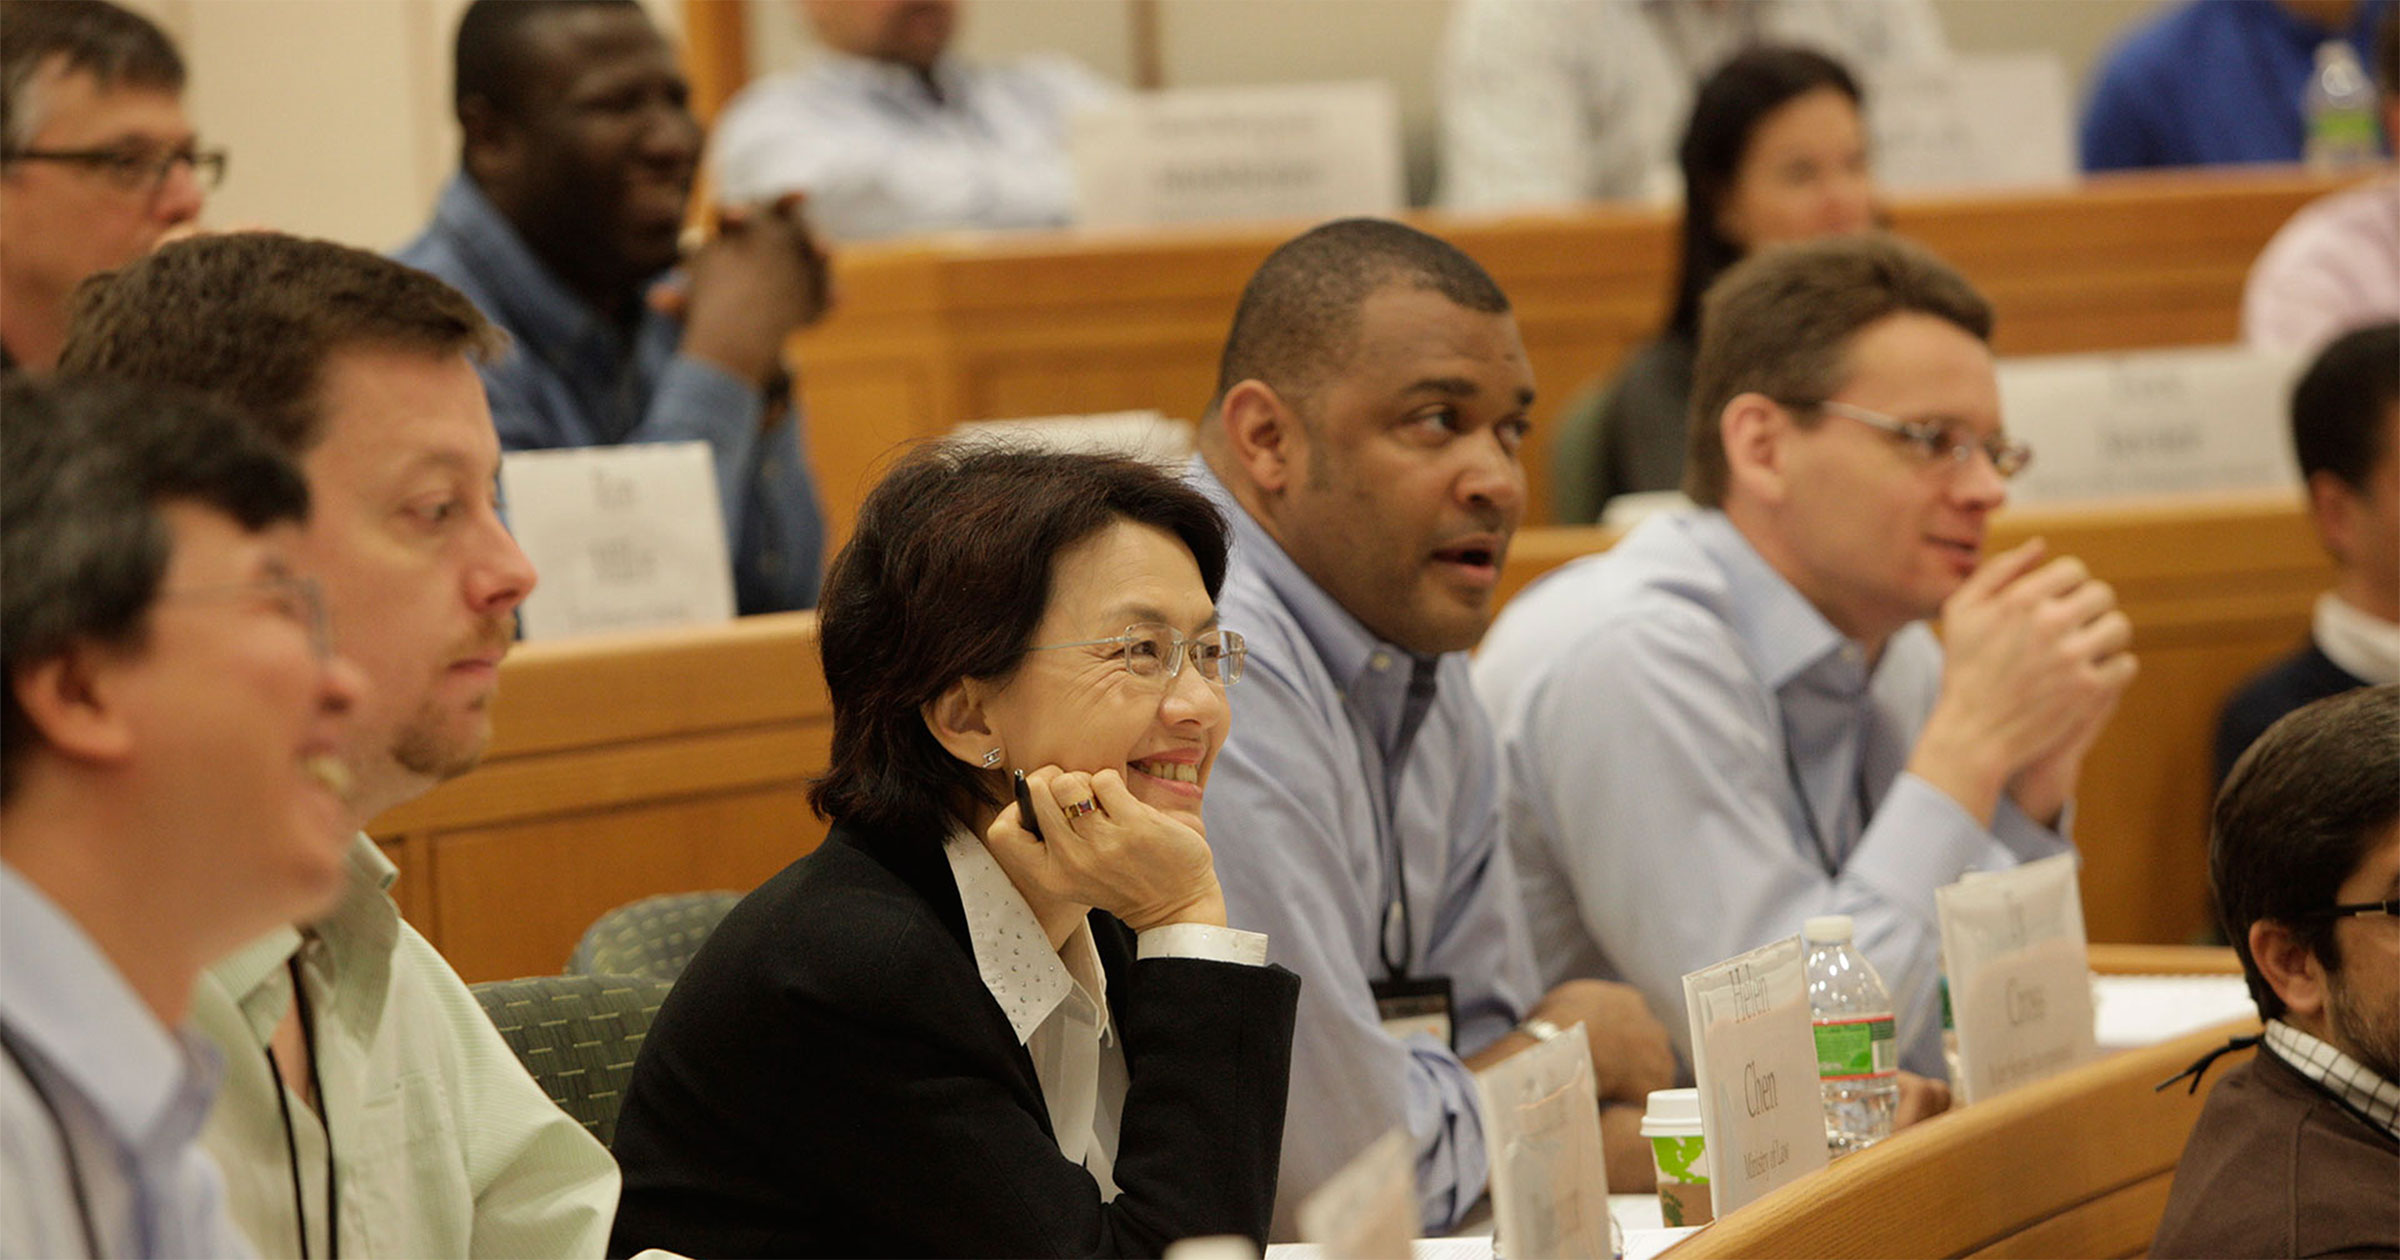 Close up of participants seated in a classroom